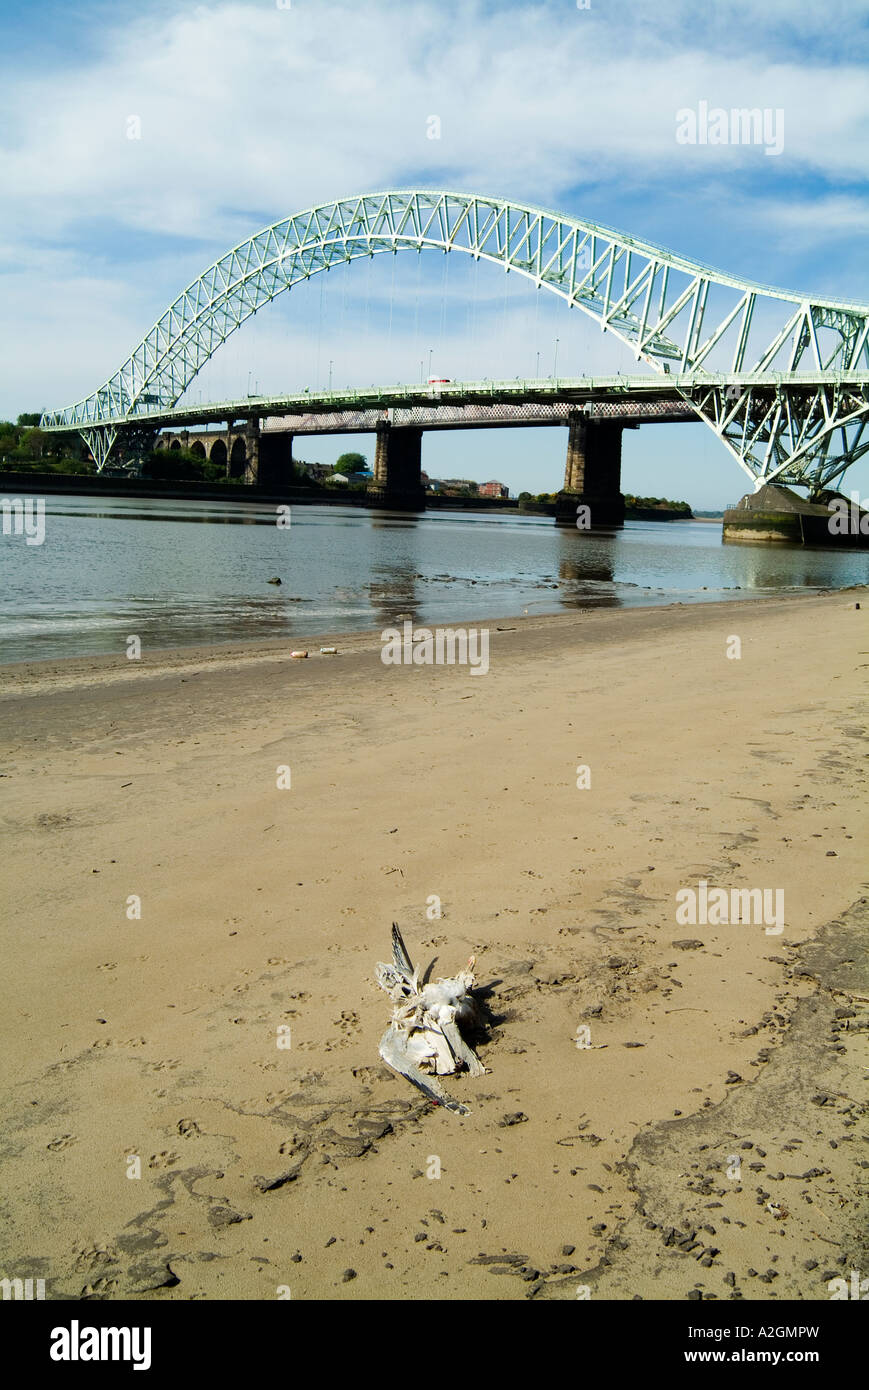 Runcorn Widnes Bridge spanning the River Mersey in Cheshire with debris in the foreground. - Stock Image